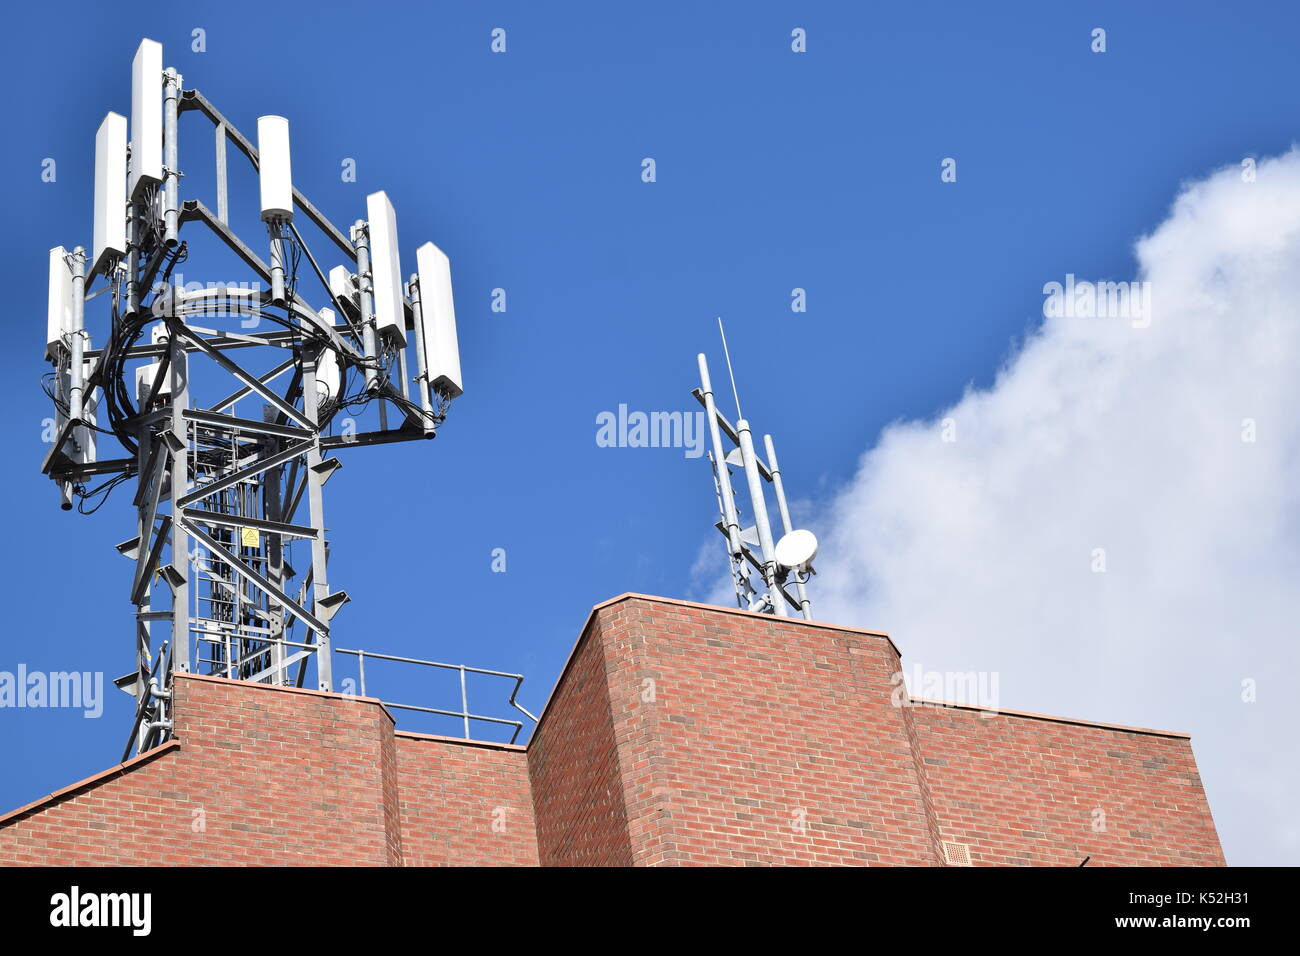 Cable Wires House Stockfotos & Cable Wires House Bilder - Alamy